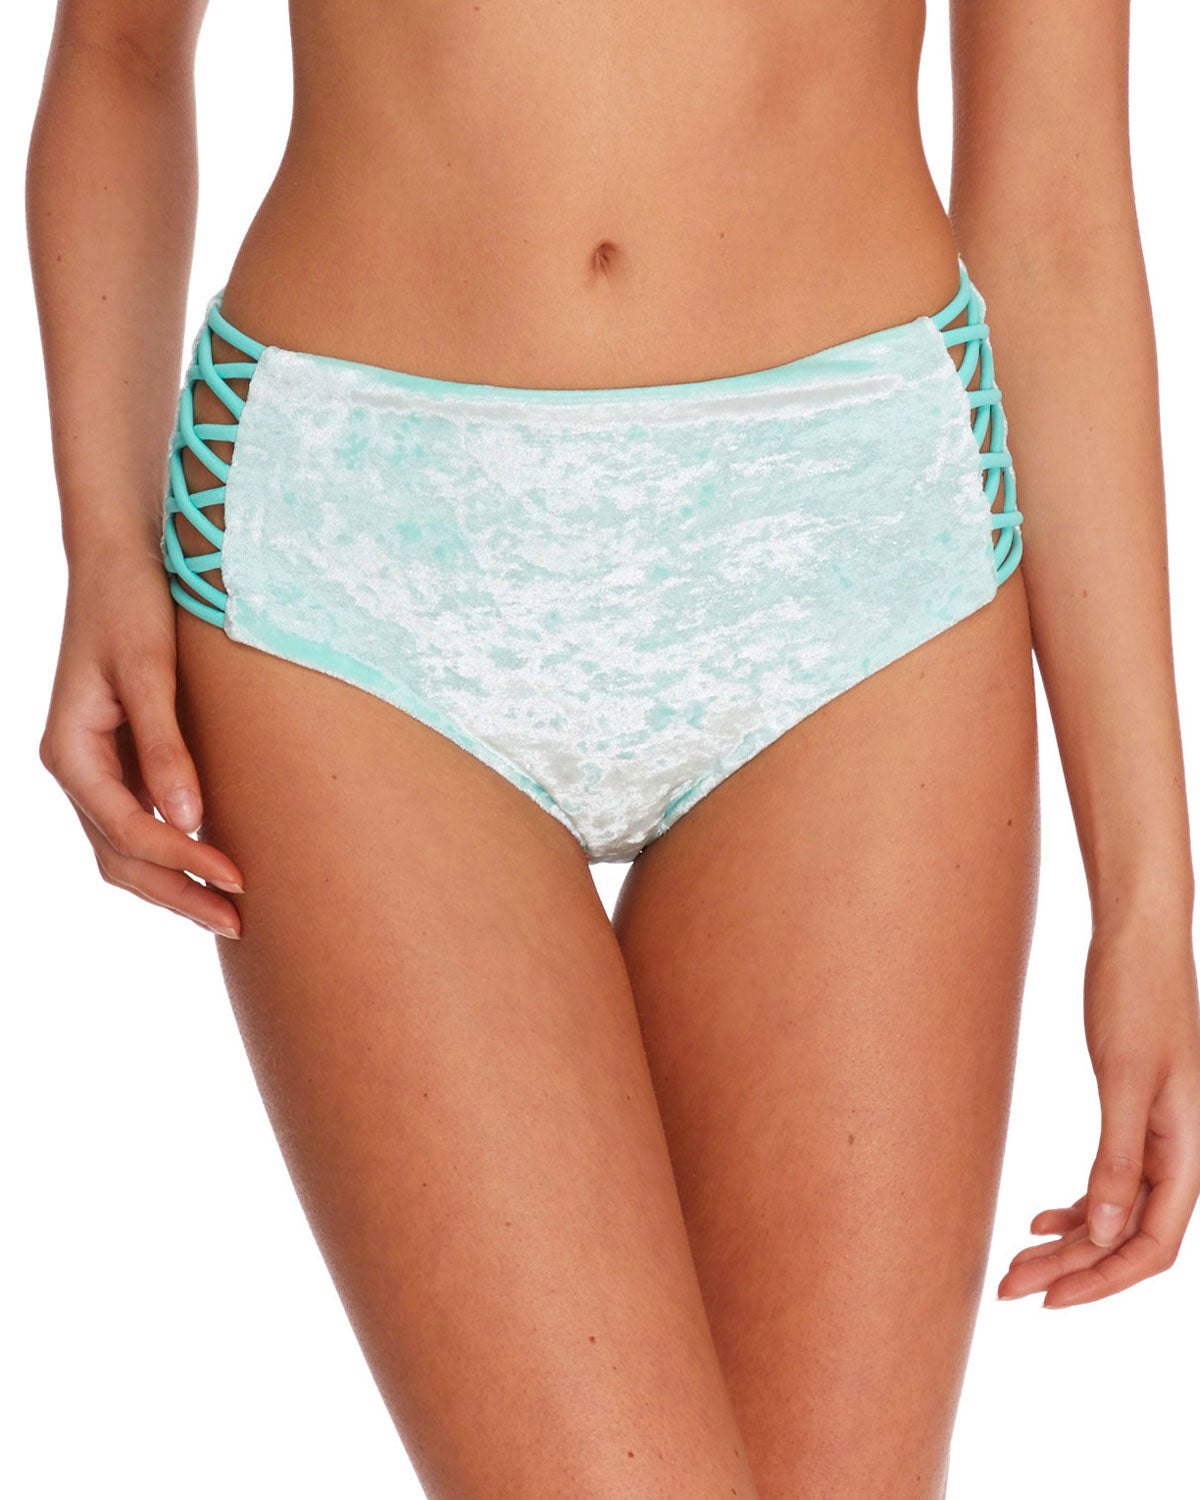 Keri Velvet Retro Swim Bottom - Seafoam